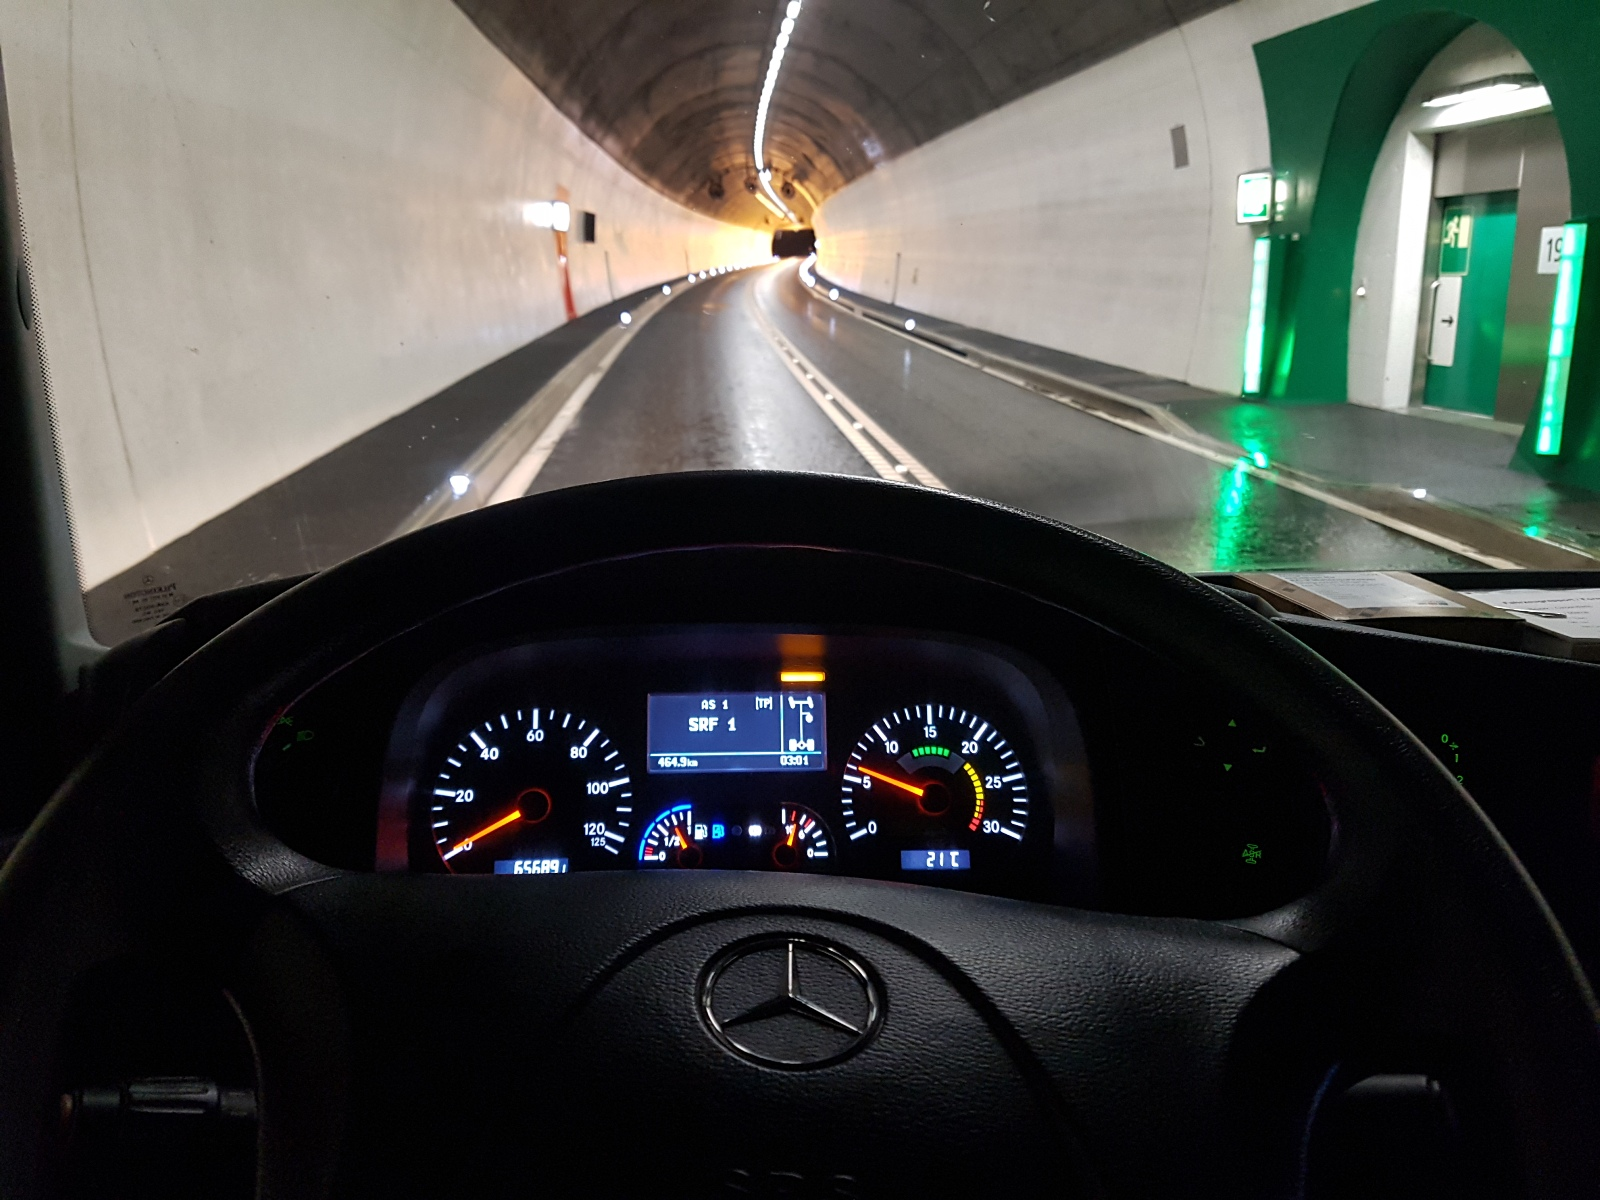 saasertunnel 1